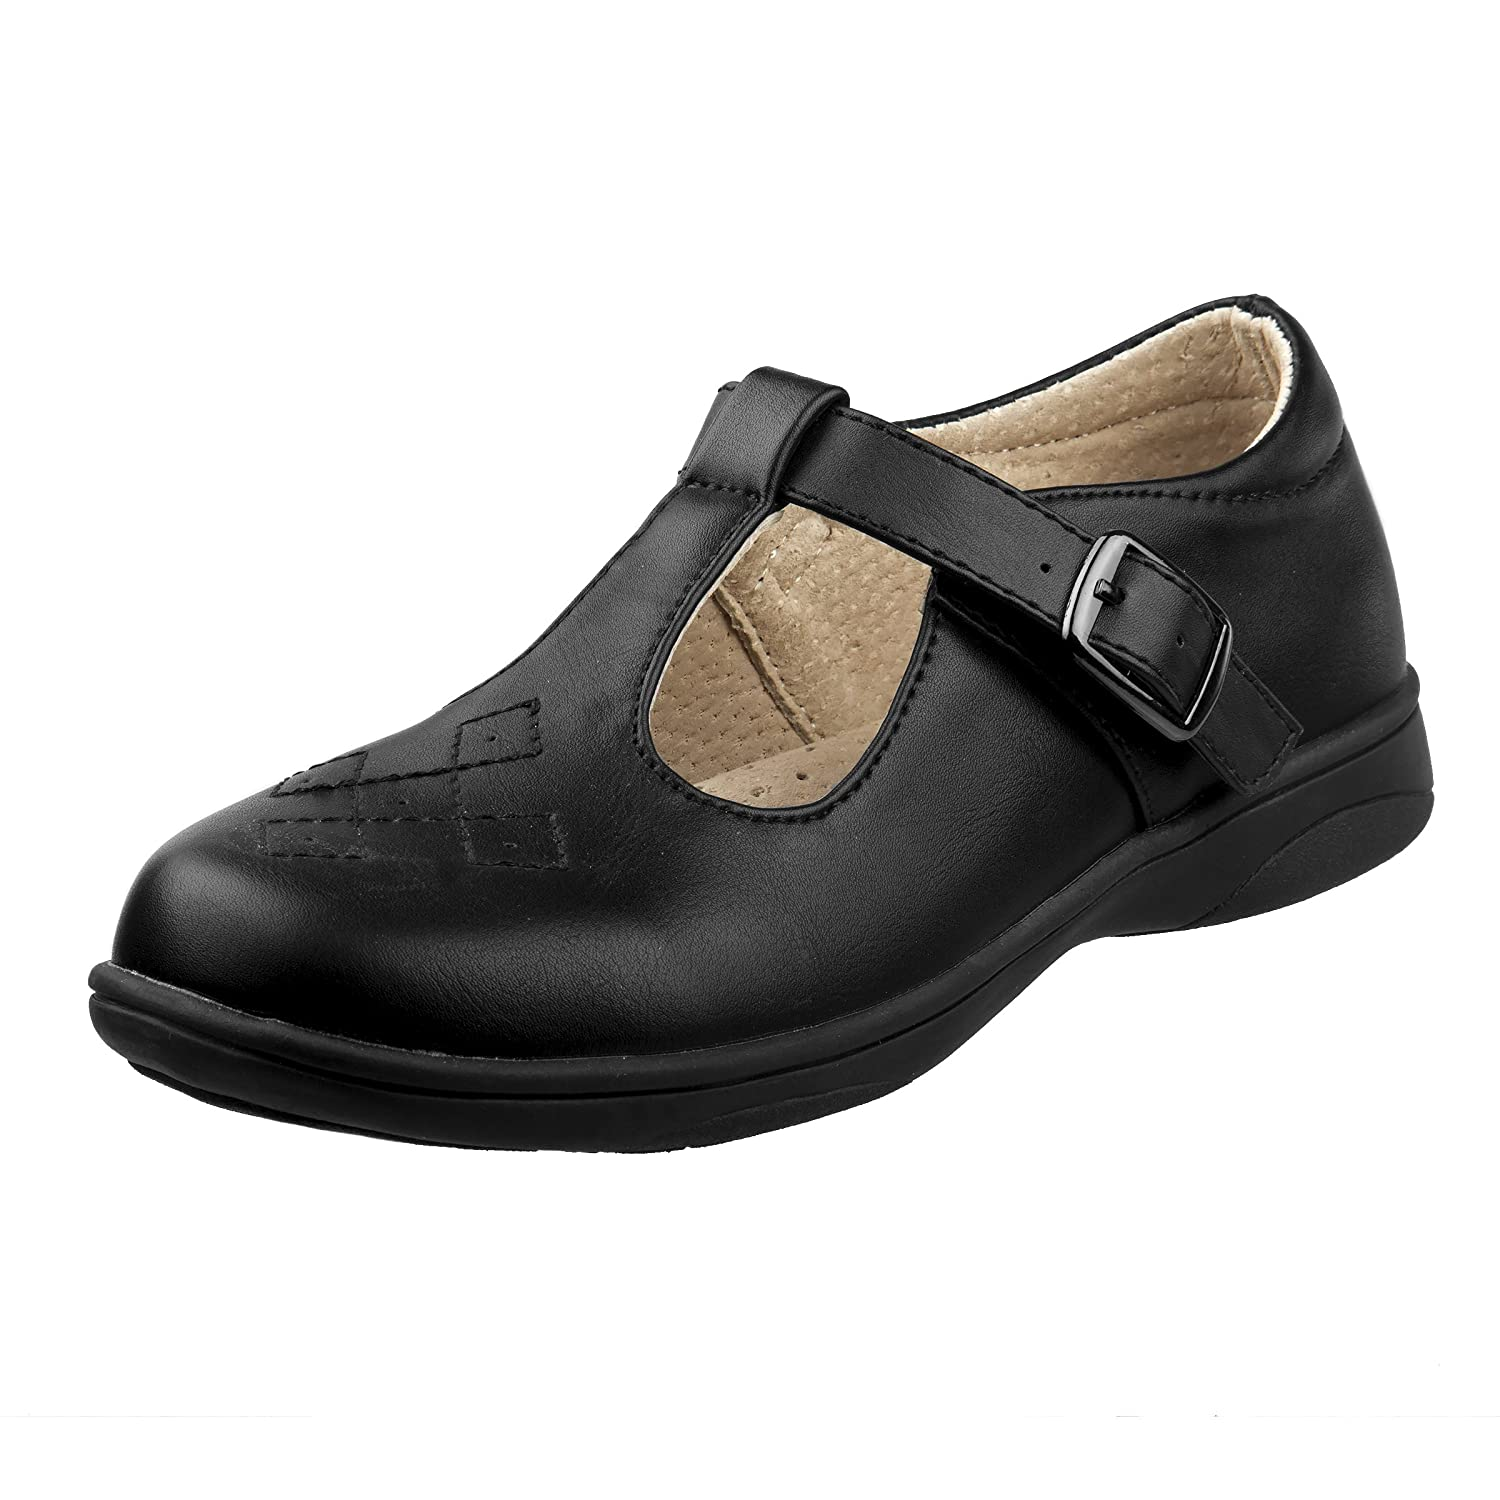 Laura Ashley Girls School Uniform Shoes with Elastic Gore Buckle (Toddler/Little Kid/Big Kid)